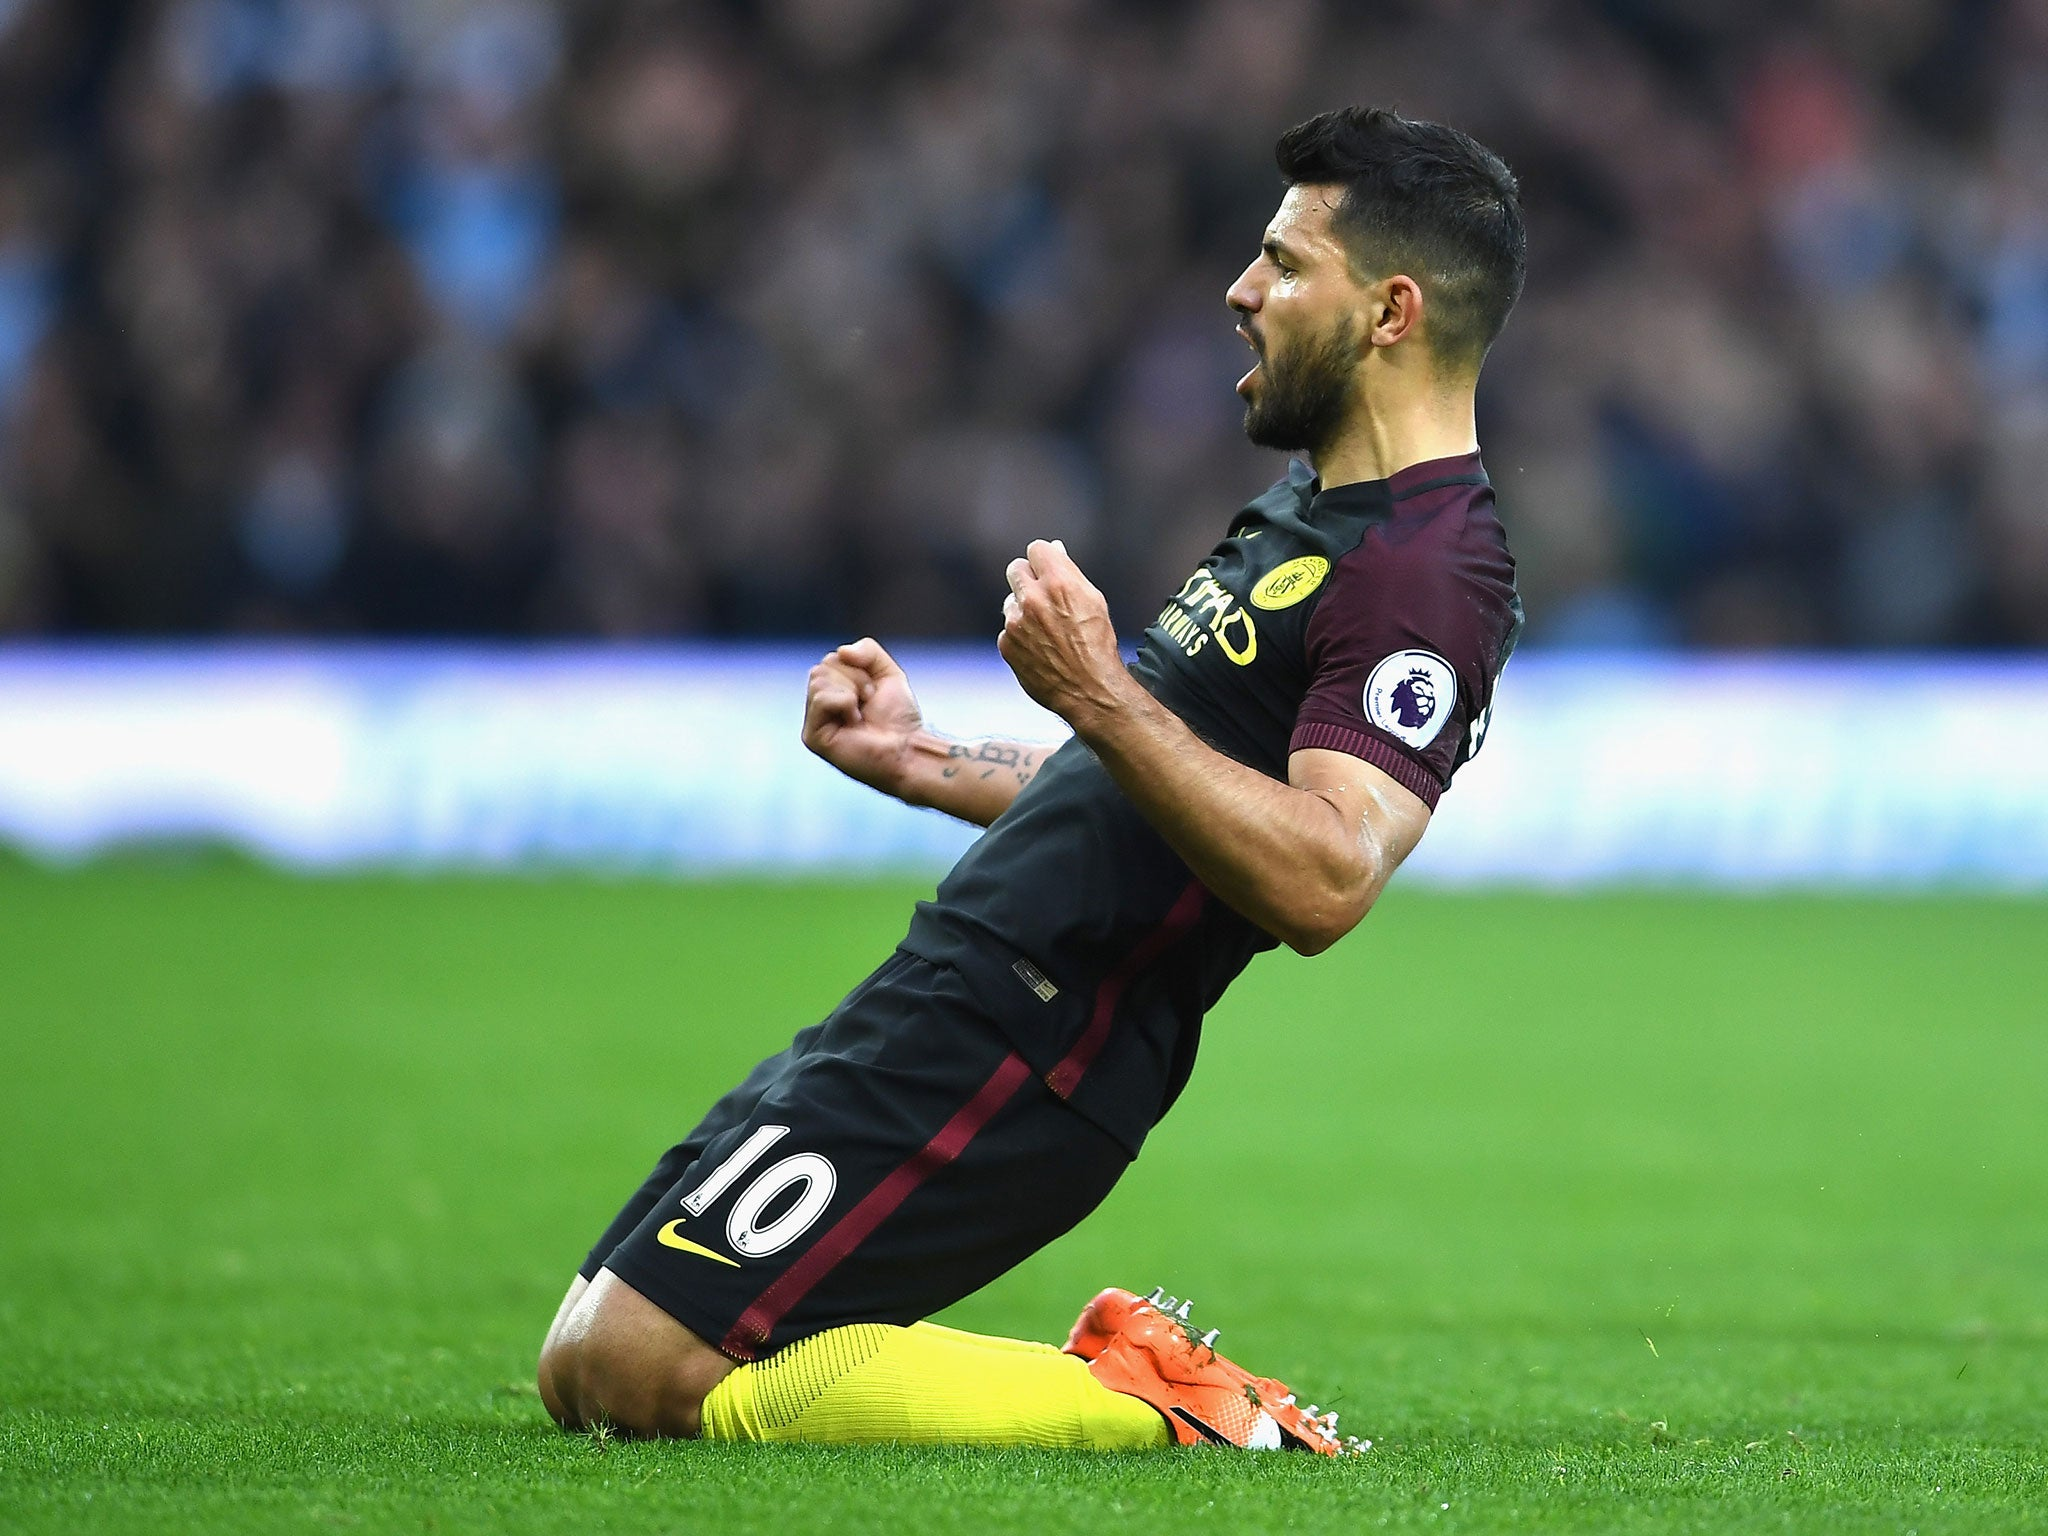 Manchester City news: Pep Guardiola hails Sergio Aguero as one of the best strikers in the world